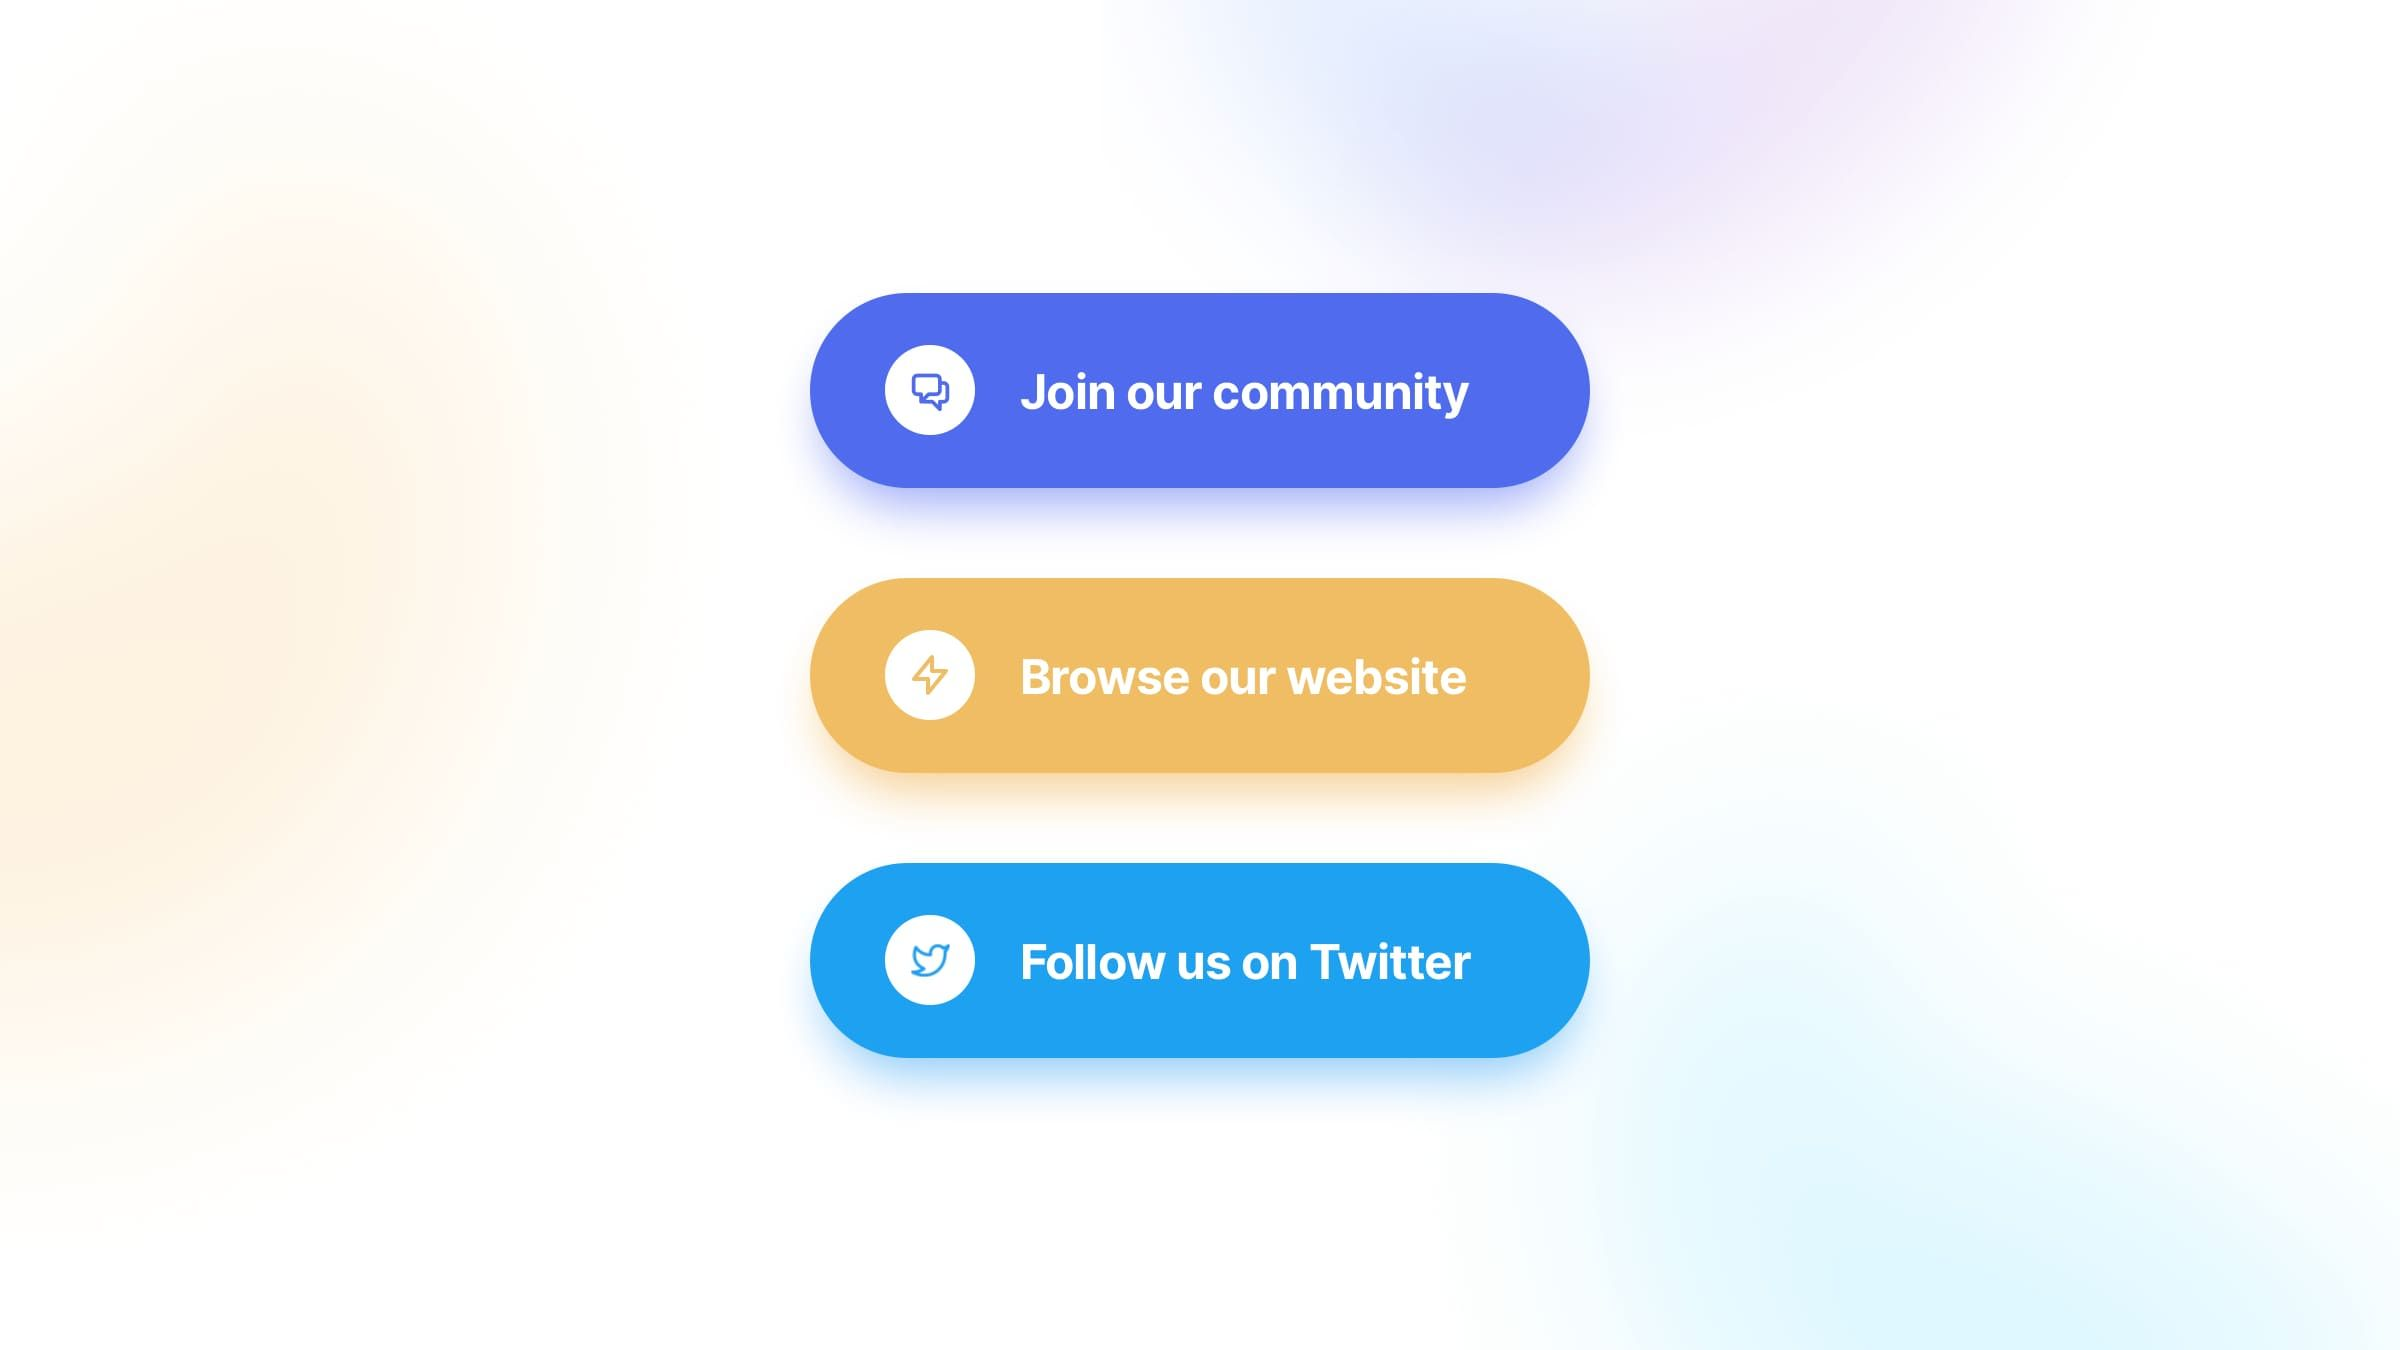 Add stylized buttons to your Super site